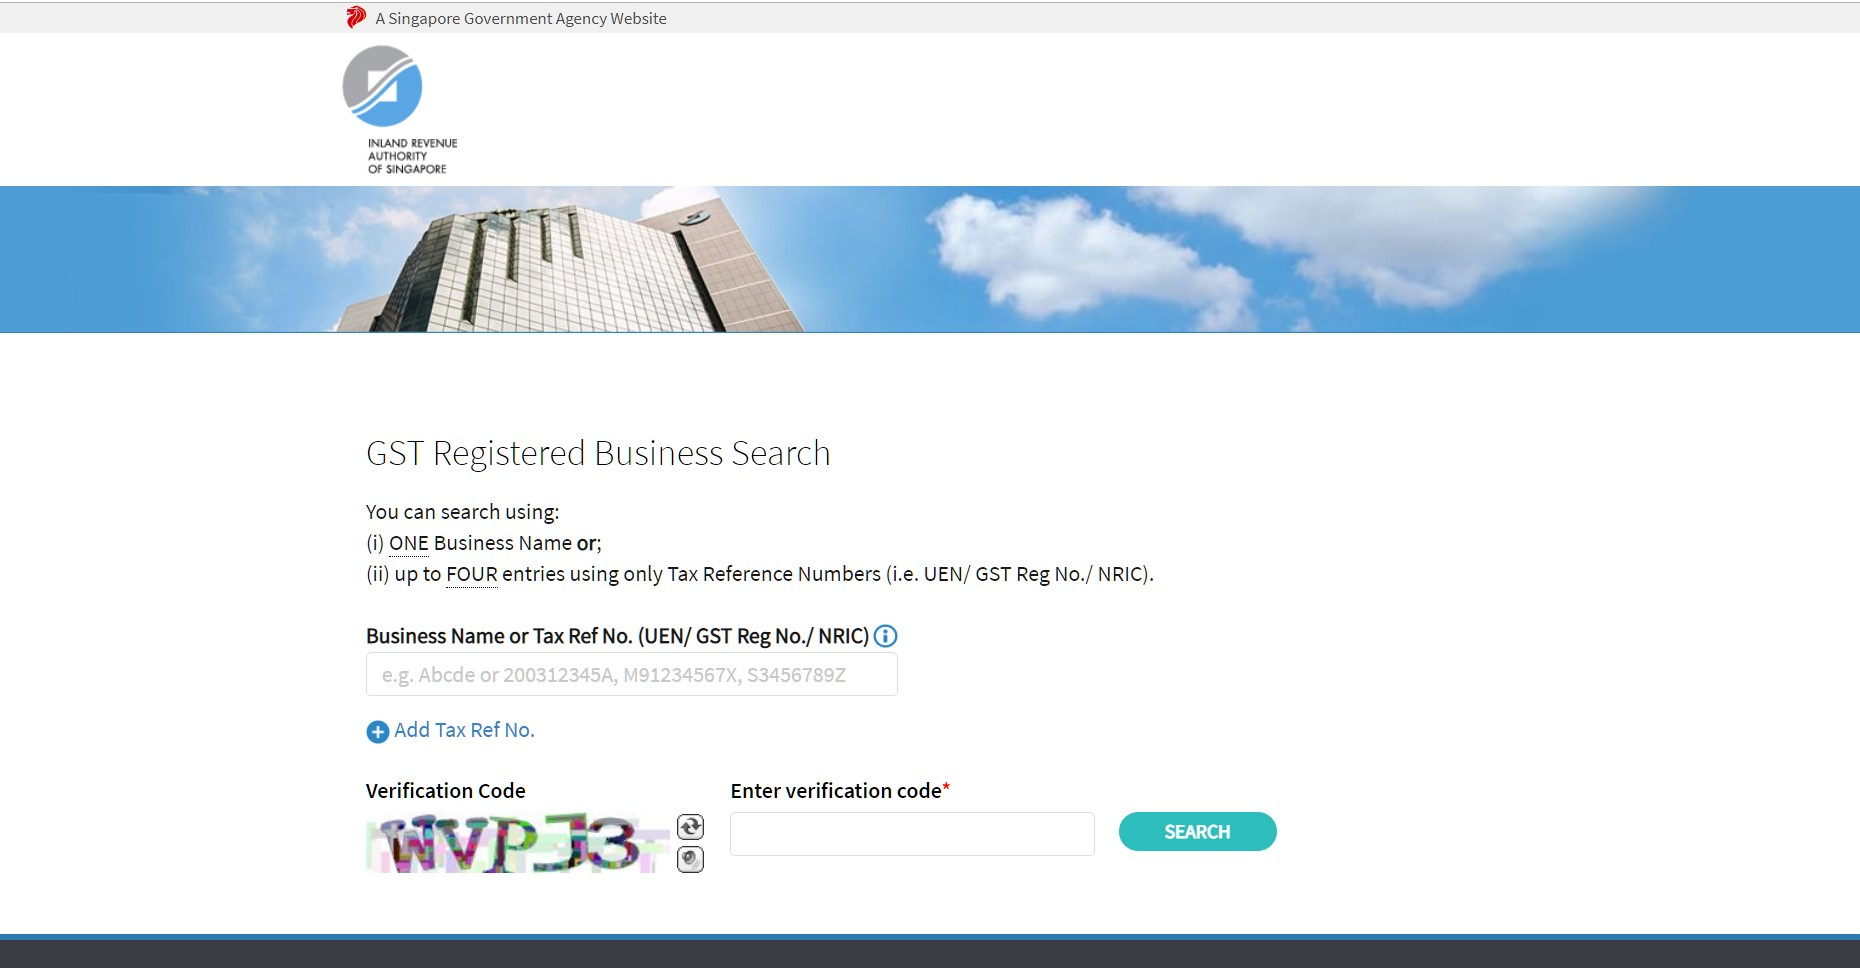 screenshot of the online tool to check gst registration for singapore businesses and companies on the iras website